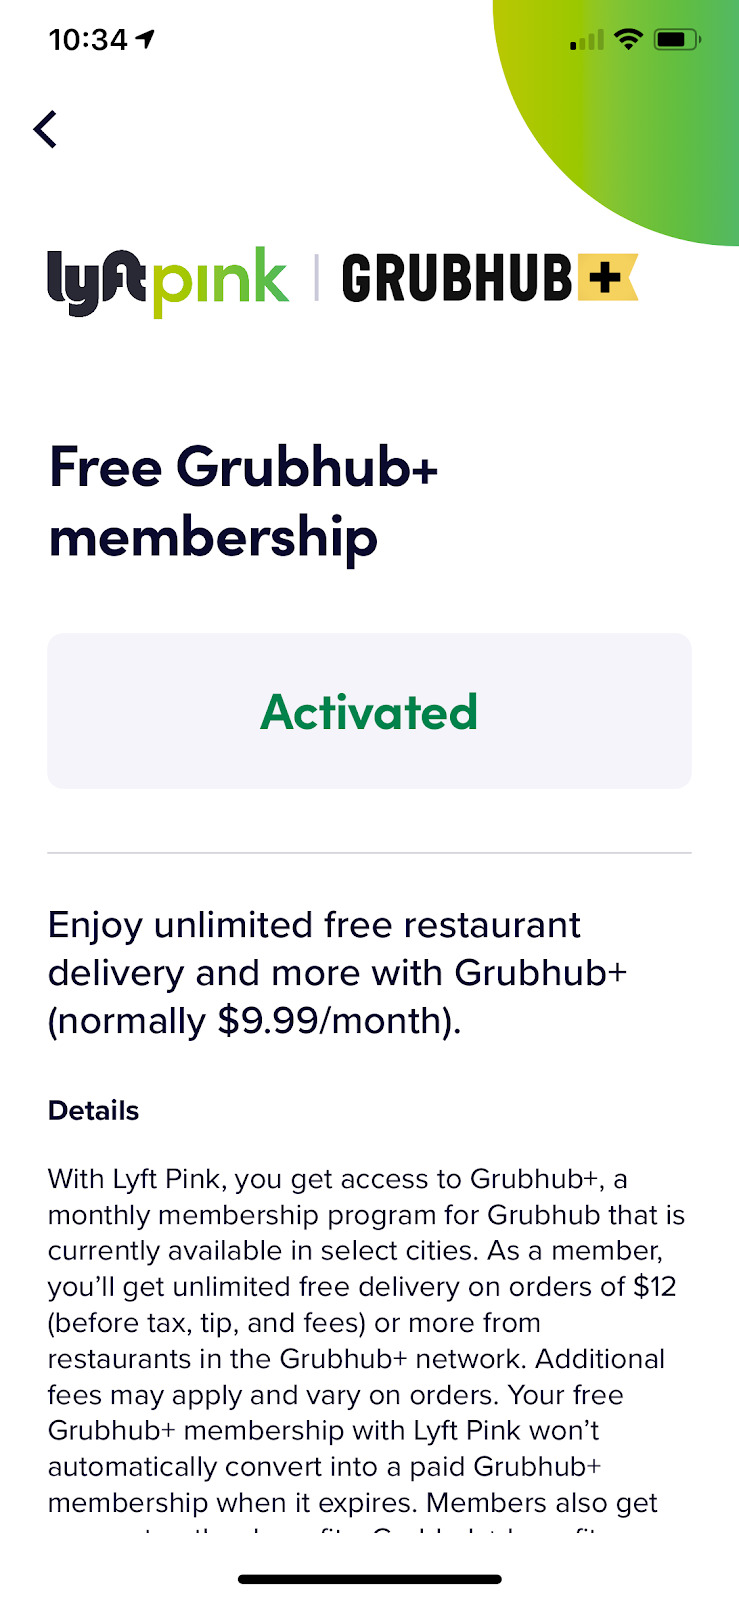 Lyft Pink Pairs with Grubhub to Offer Free Delivery to Subscribers